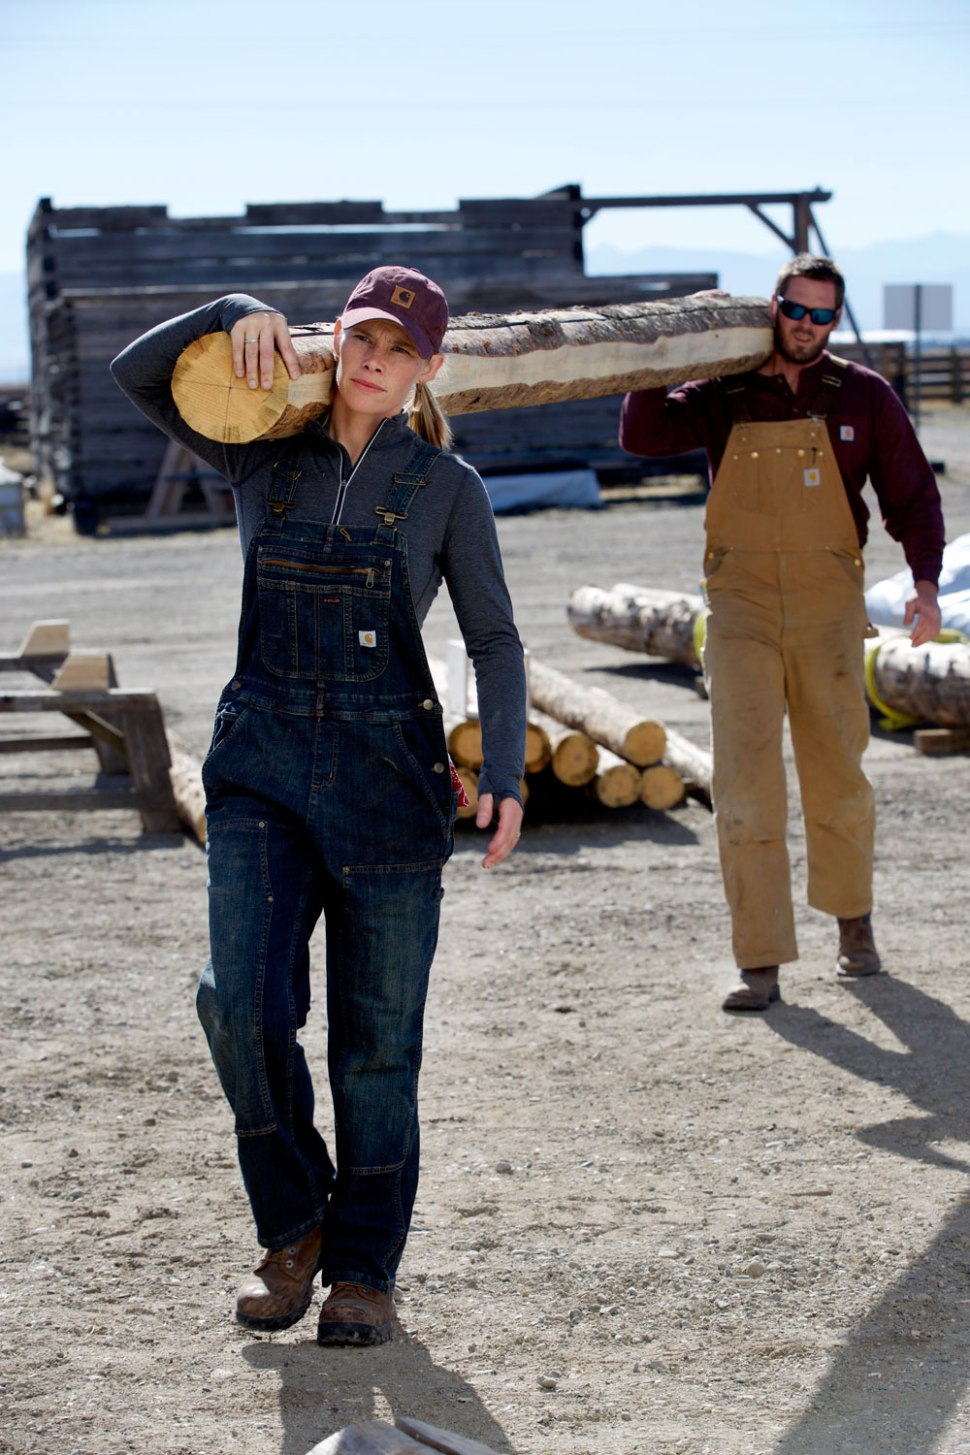 Amber Williams, Carpenter and Timber Production Manager at OSM in Bozeman, Montana / Crafted in Carhartt